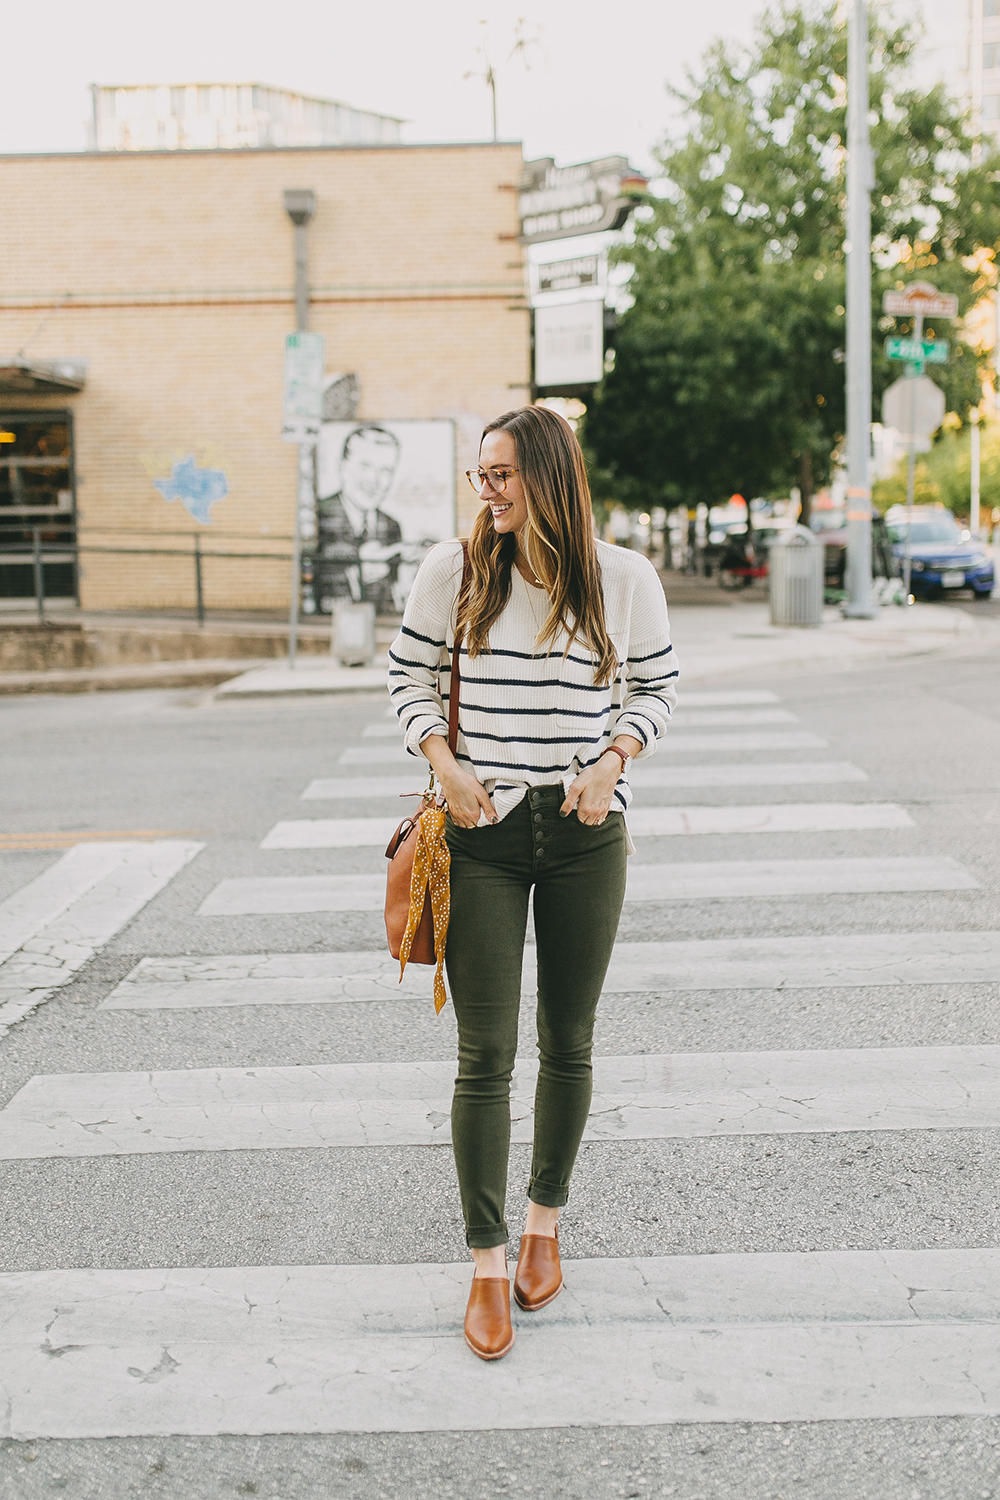 livvyland-blog-olivia-watson-austin-texas-fashion-lifestyle-blogger-madewell-olive-skinny-jeans-striped-sweater-trunk-club-review-1